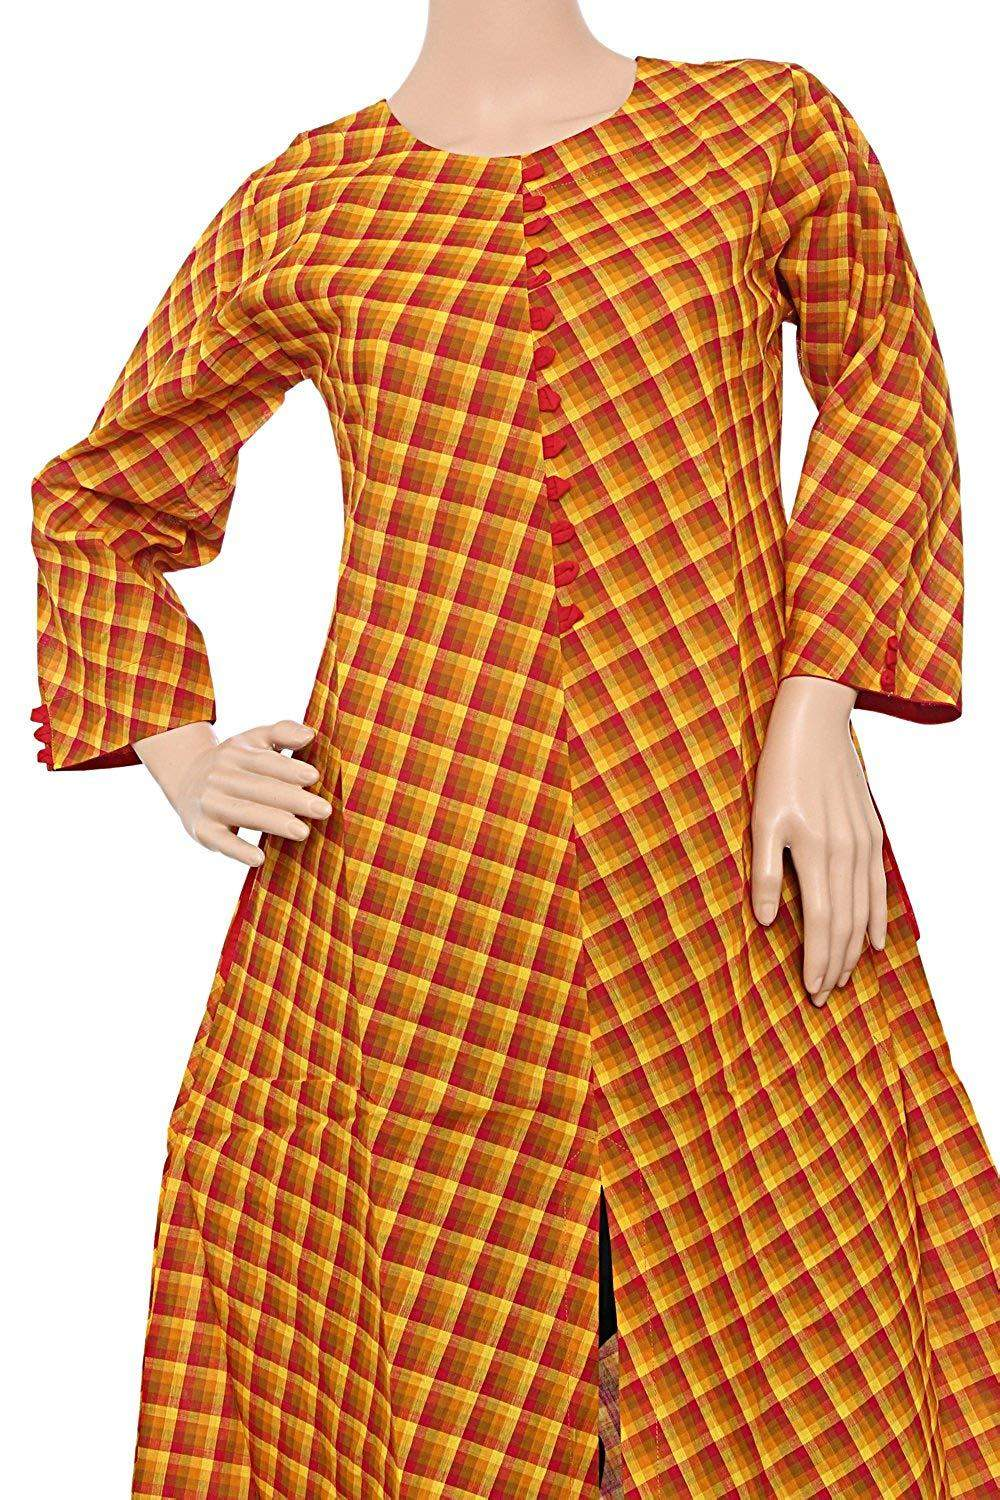 A-Line Printed Casual Cotton Kurti for Women's Orange - Bagaholics Gift